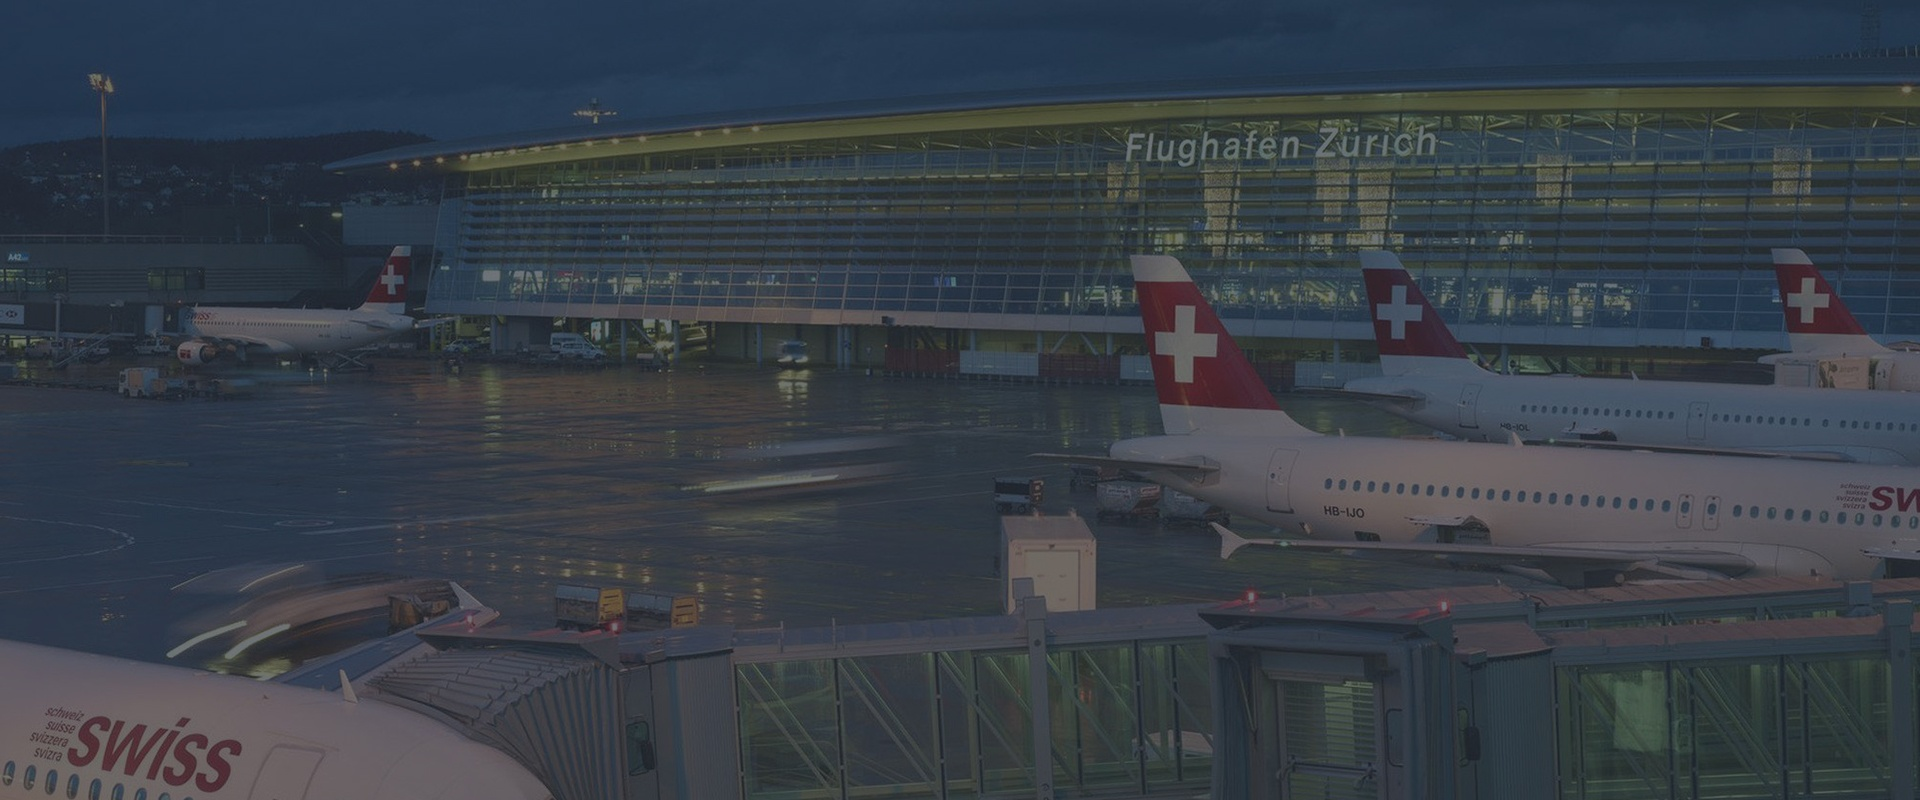 SAP HCM REPORTING SOARS AT ZÜRICH AIRPORT